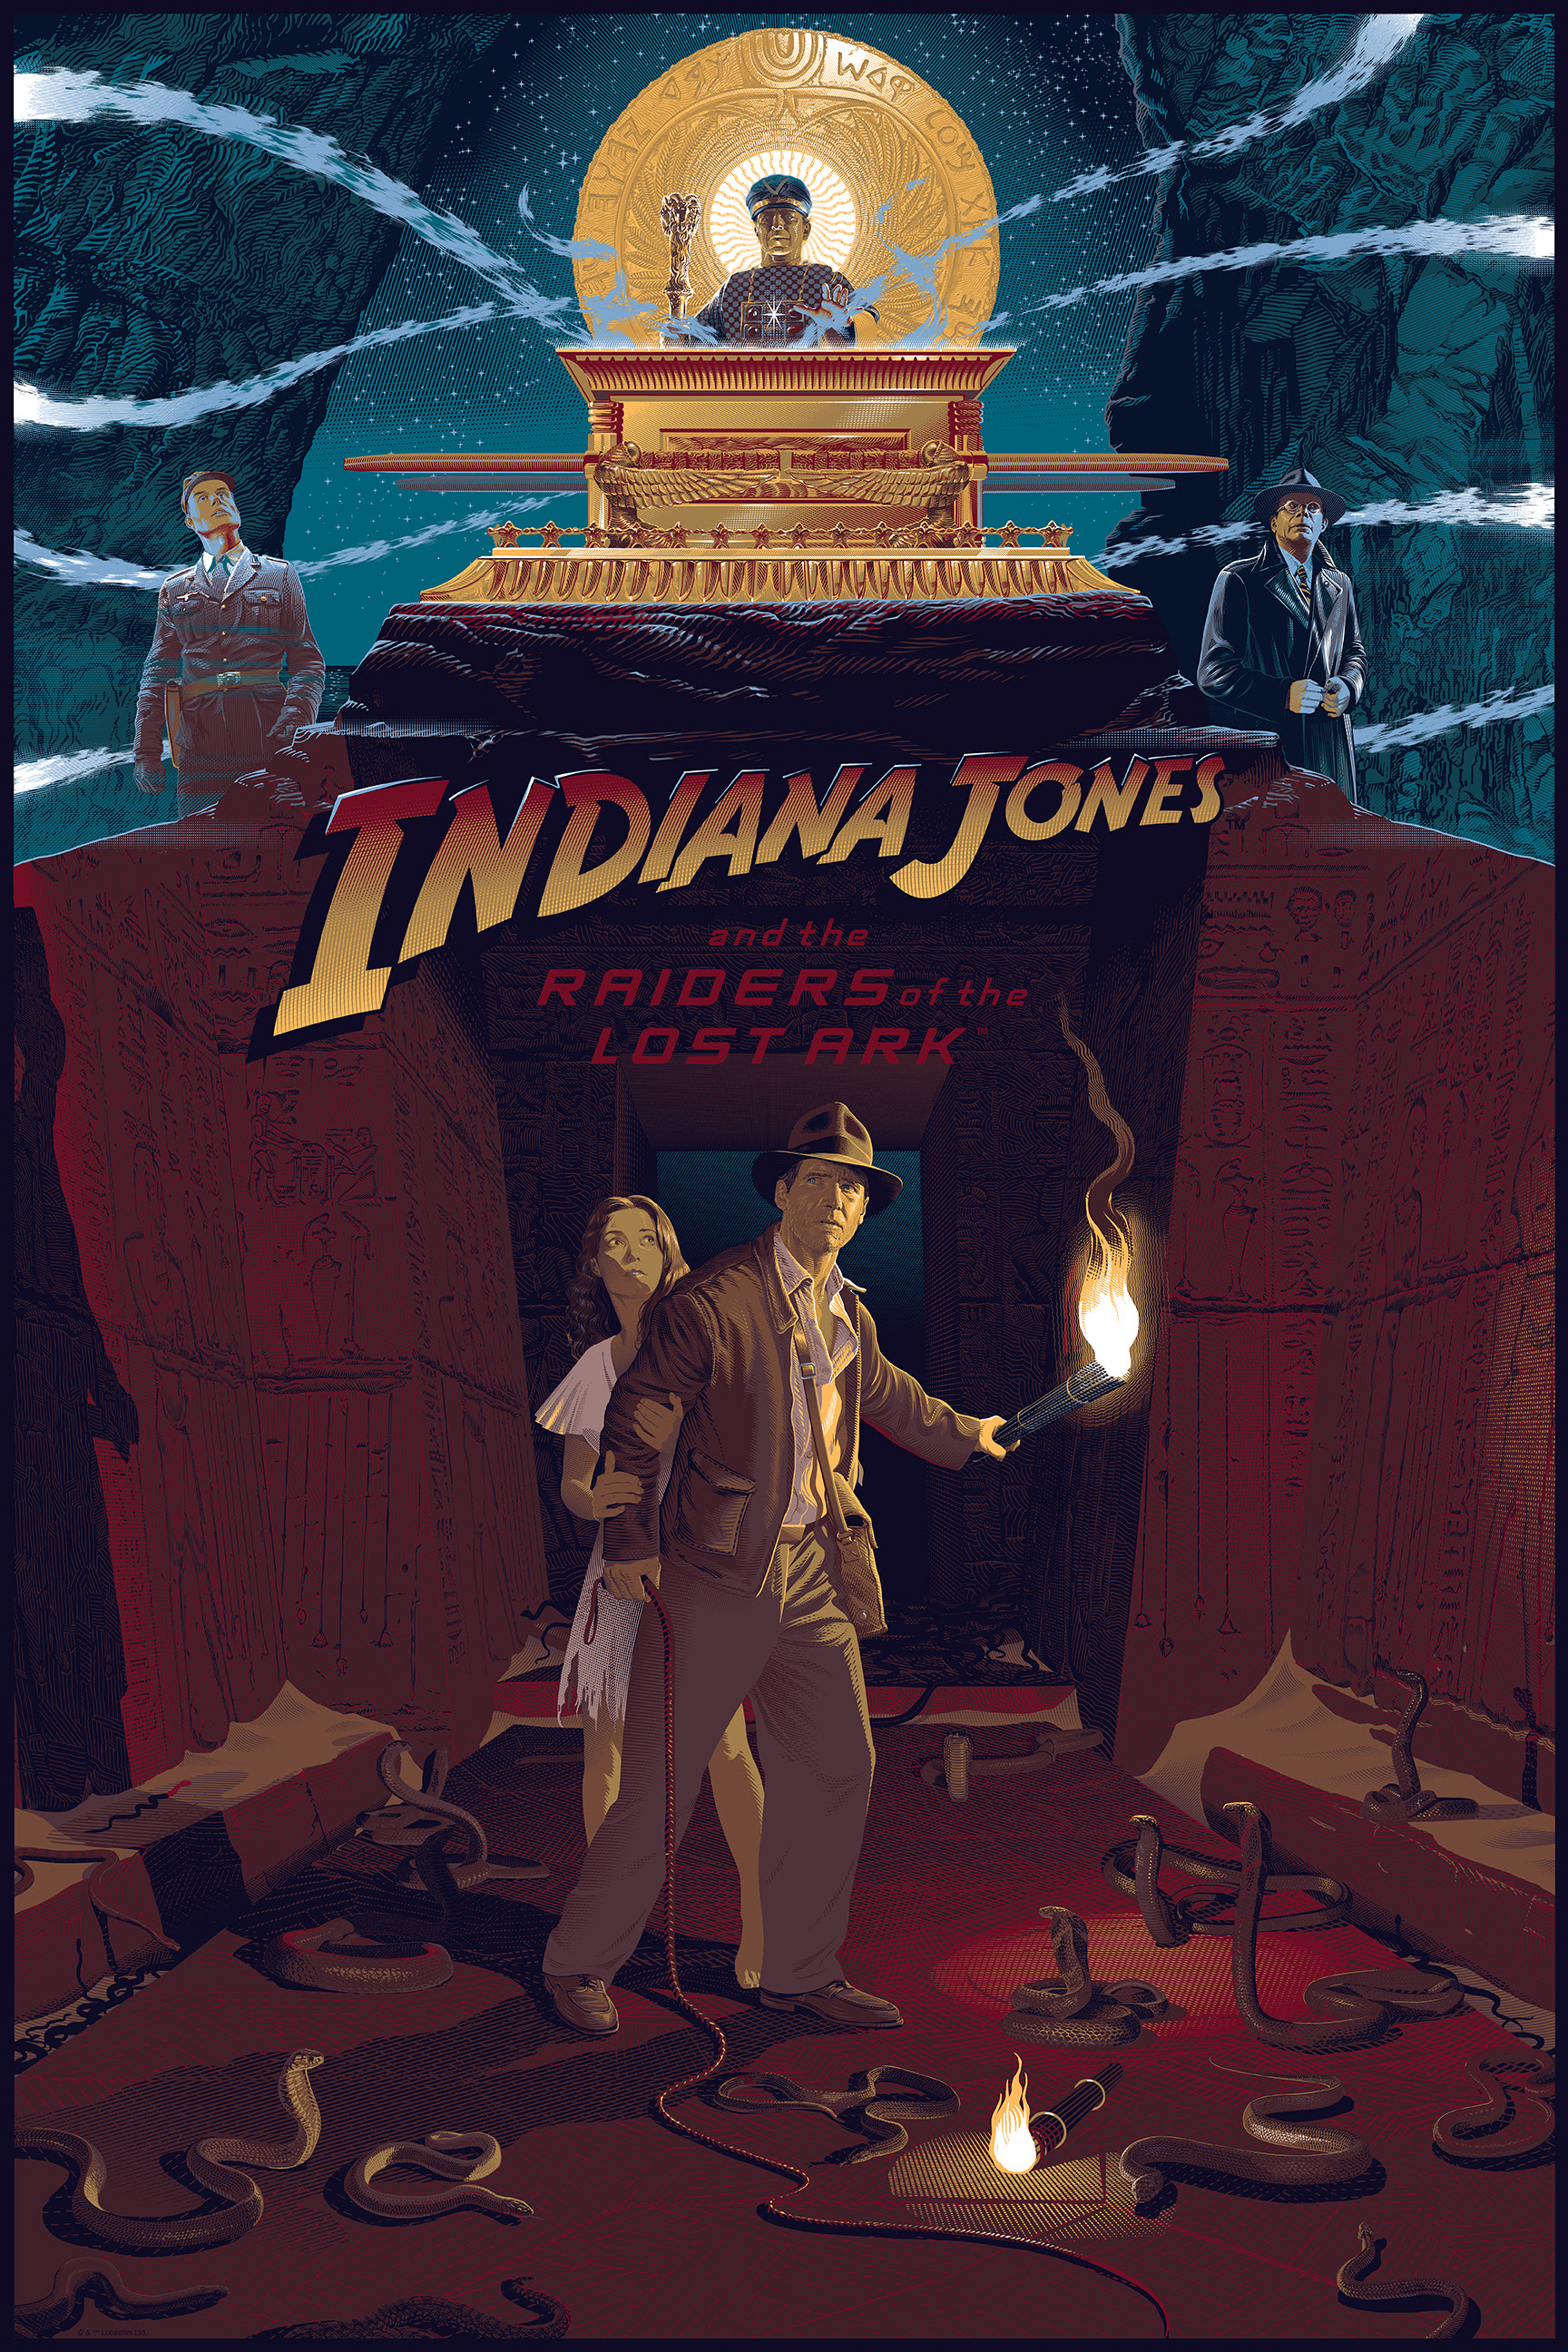 """Indiana Jones and the Raiders of the Lost Ark"" by Laurent Durieux.  24"" x 36"" 15-color Screenprint w/ metallic.  Ed of 275 N.  $80 (variant)"